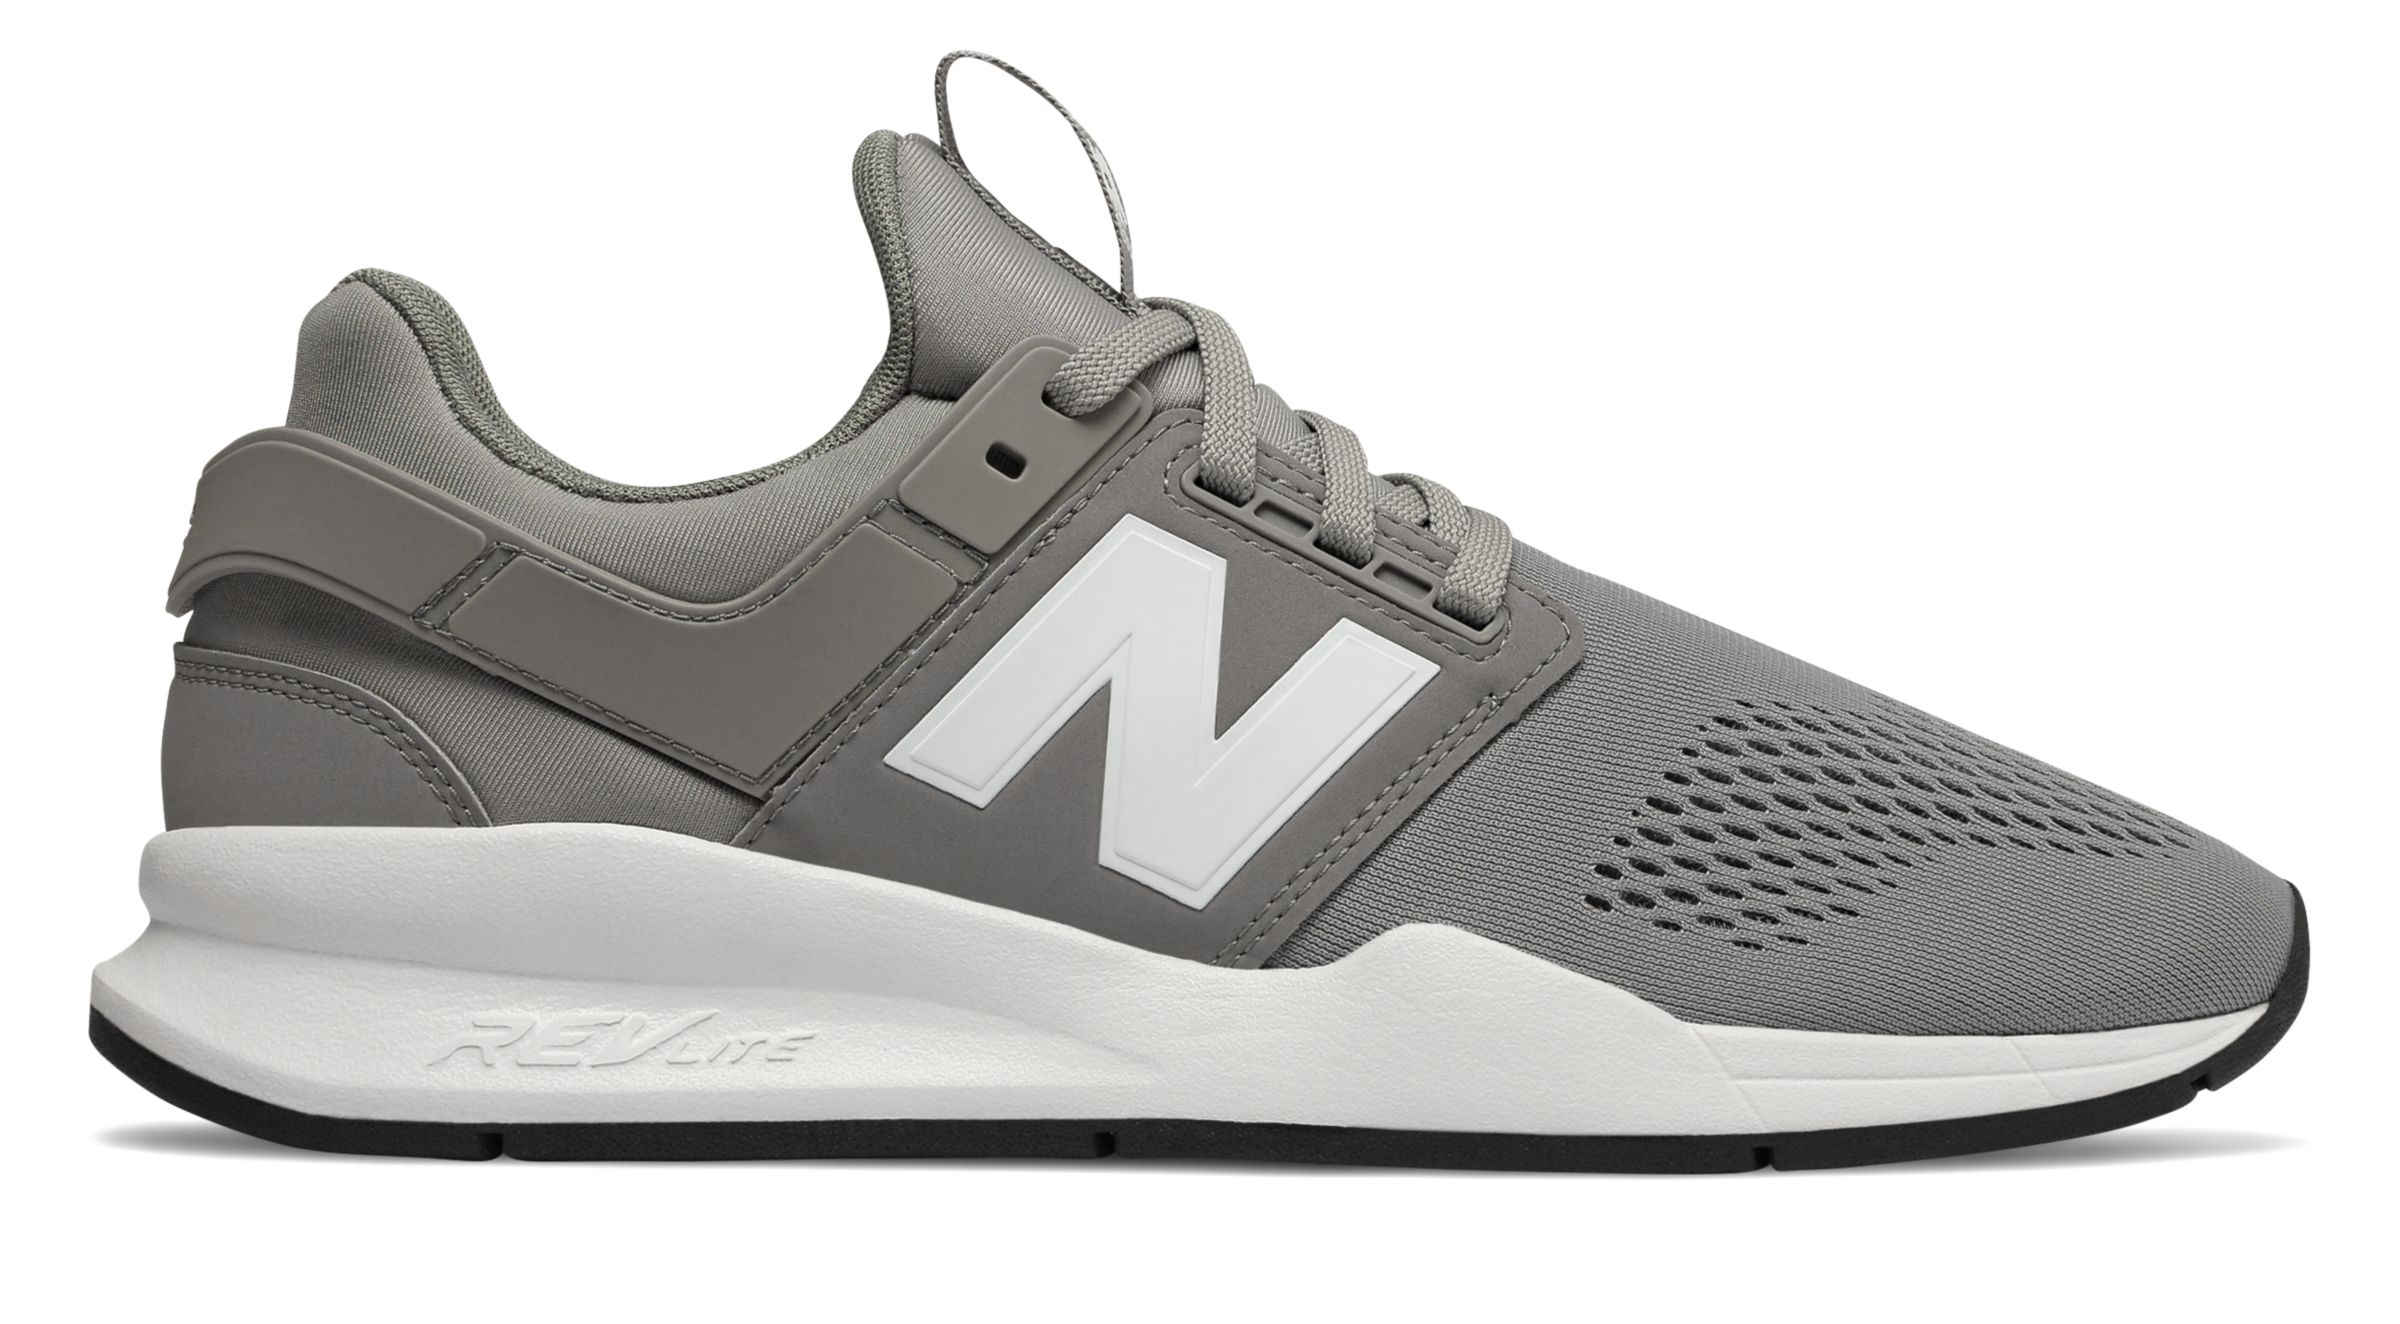 482440fd Details about New Balance Male Men's 247 Adult Lifestyle Shoes Stylish Grey  With White